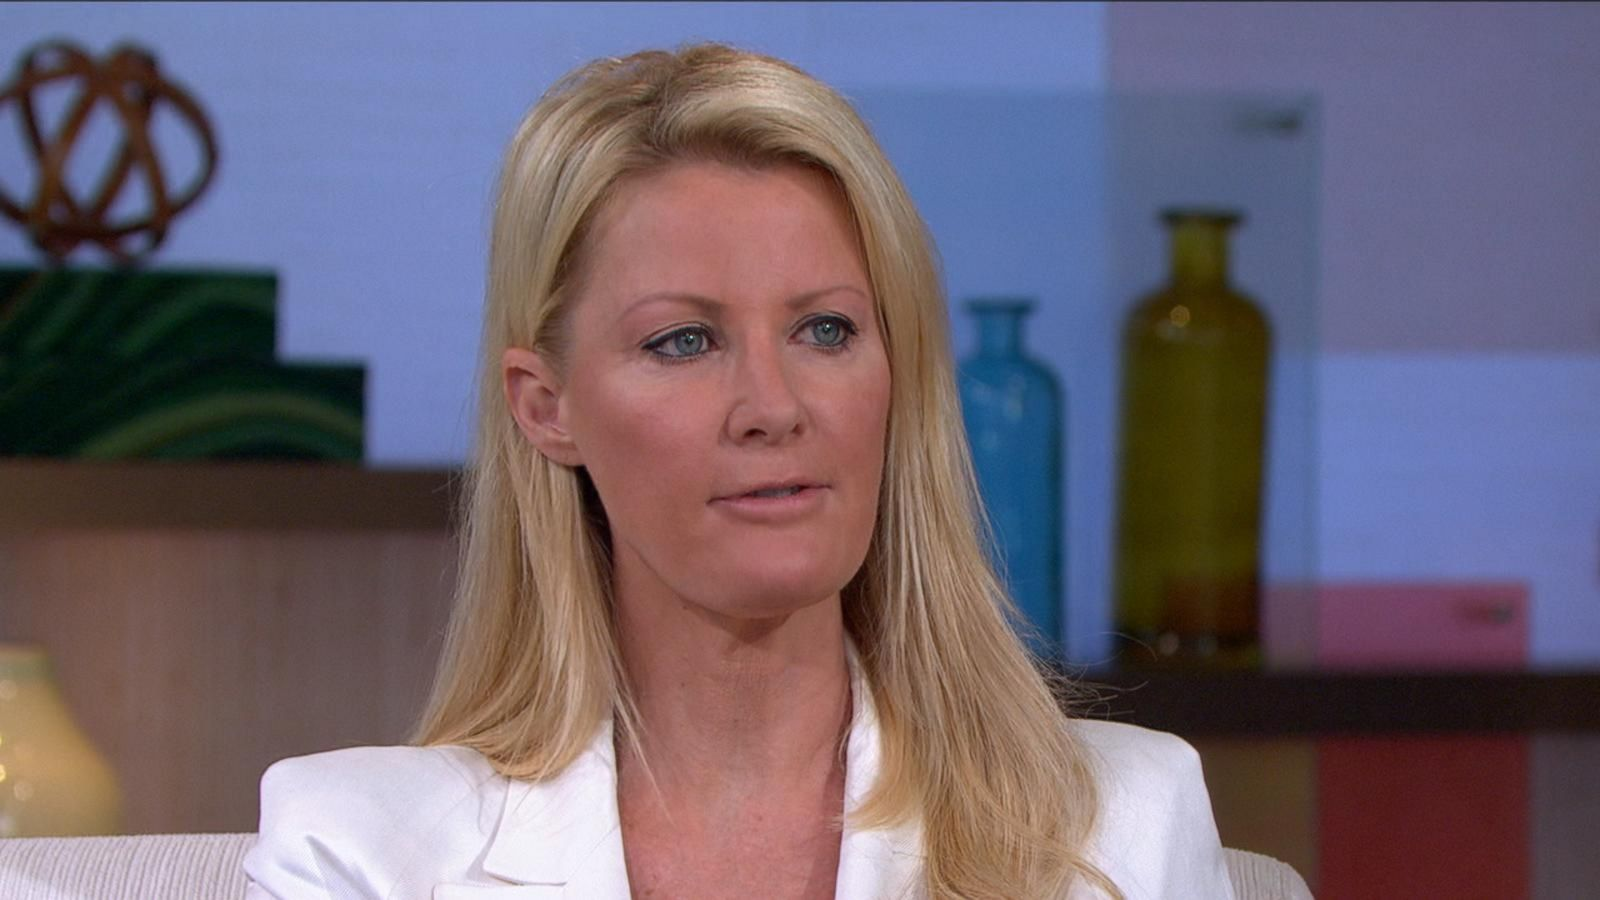 tv personality sandra lee battling breast cancer, urges women to be